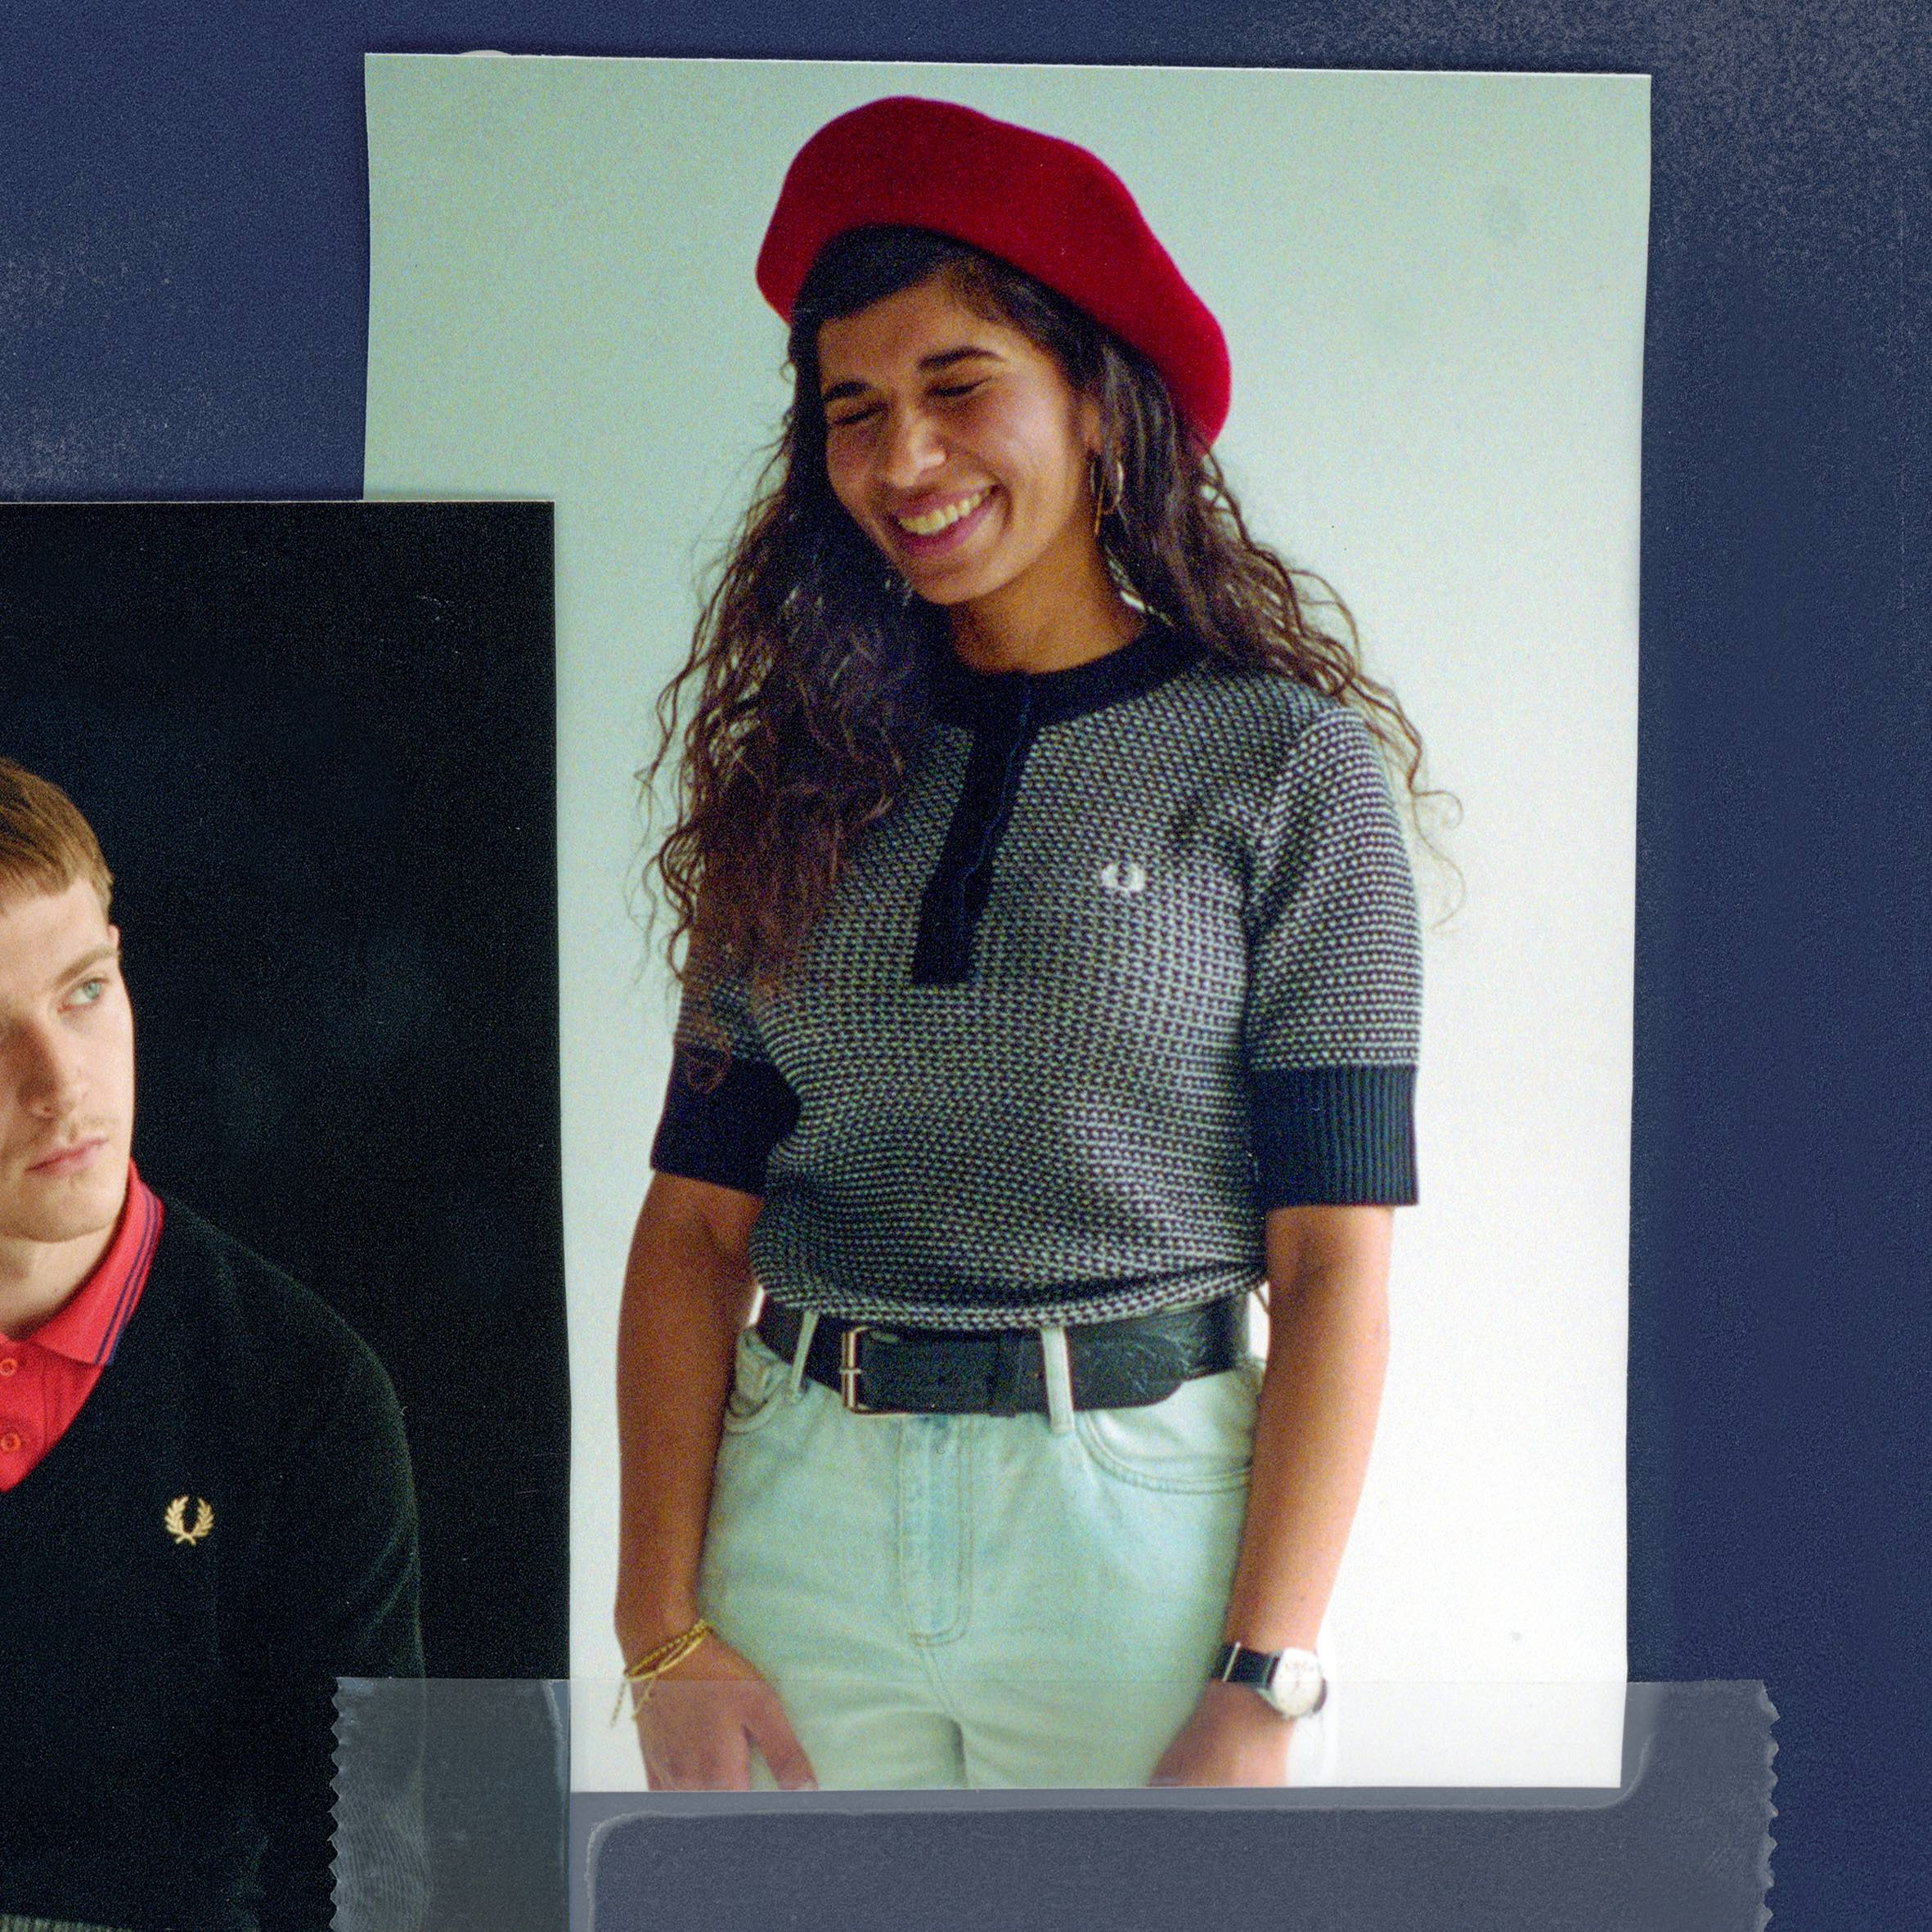 Fred Perry Circa 2017: Throwing Shade